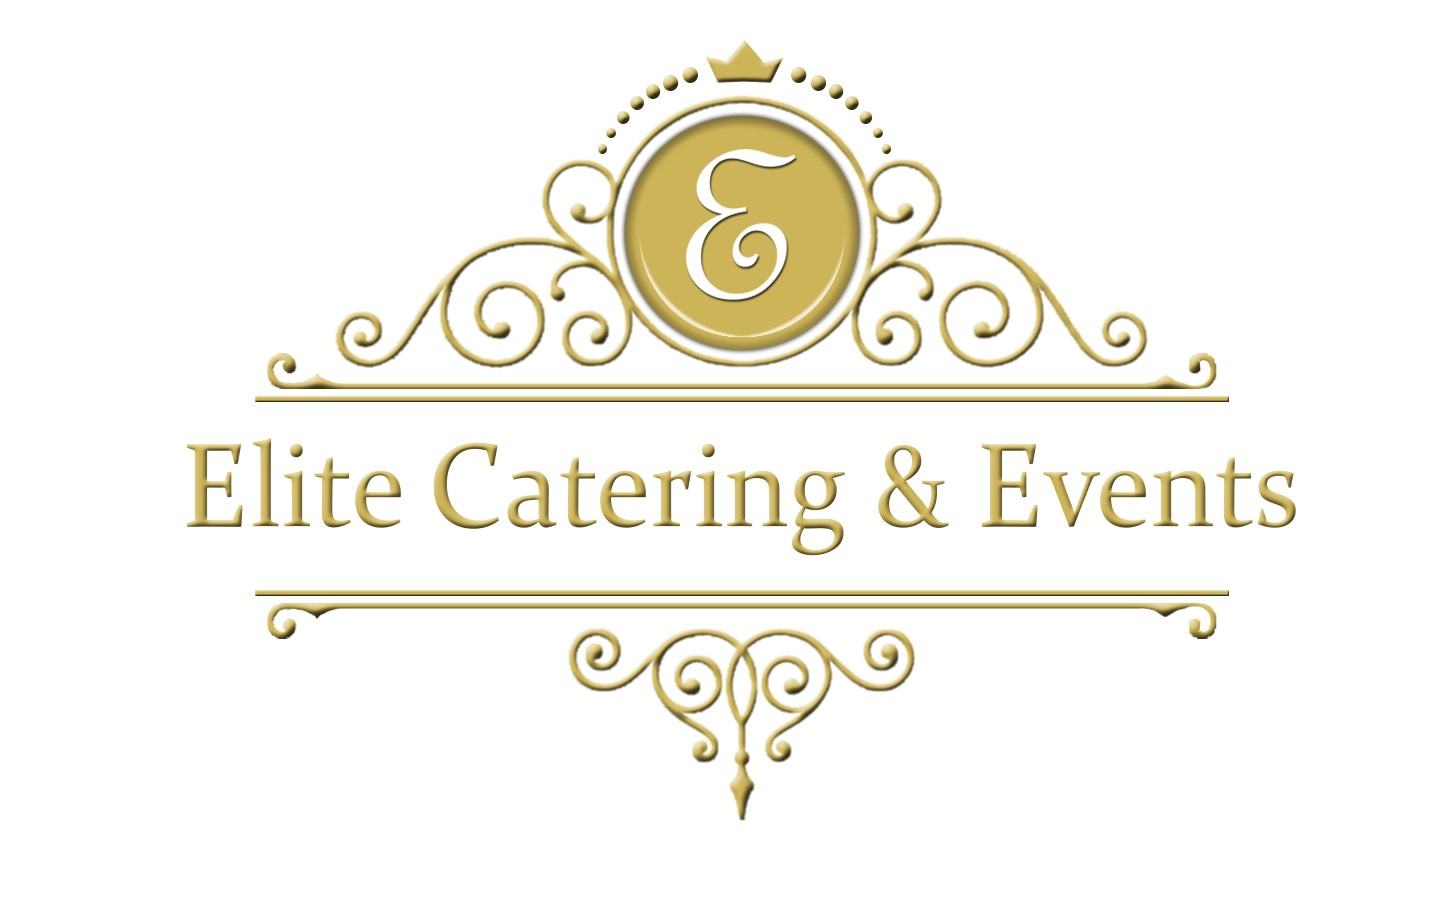 Servicios de Catering | Elite Catering & Events | Los Angeles